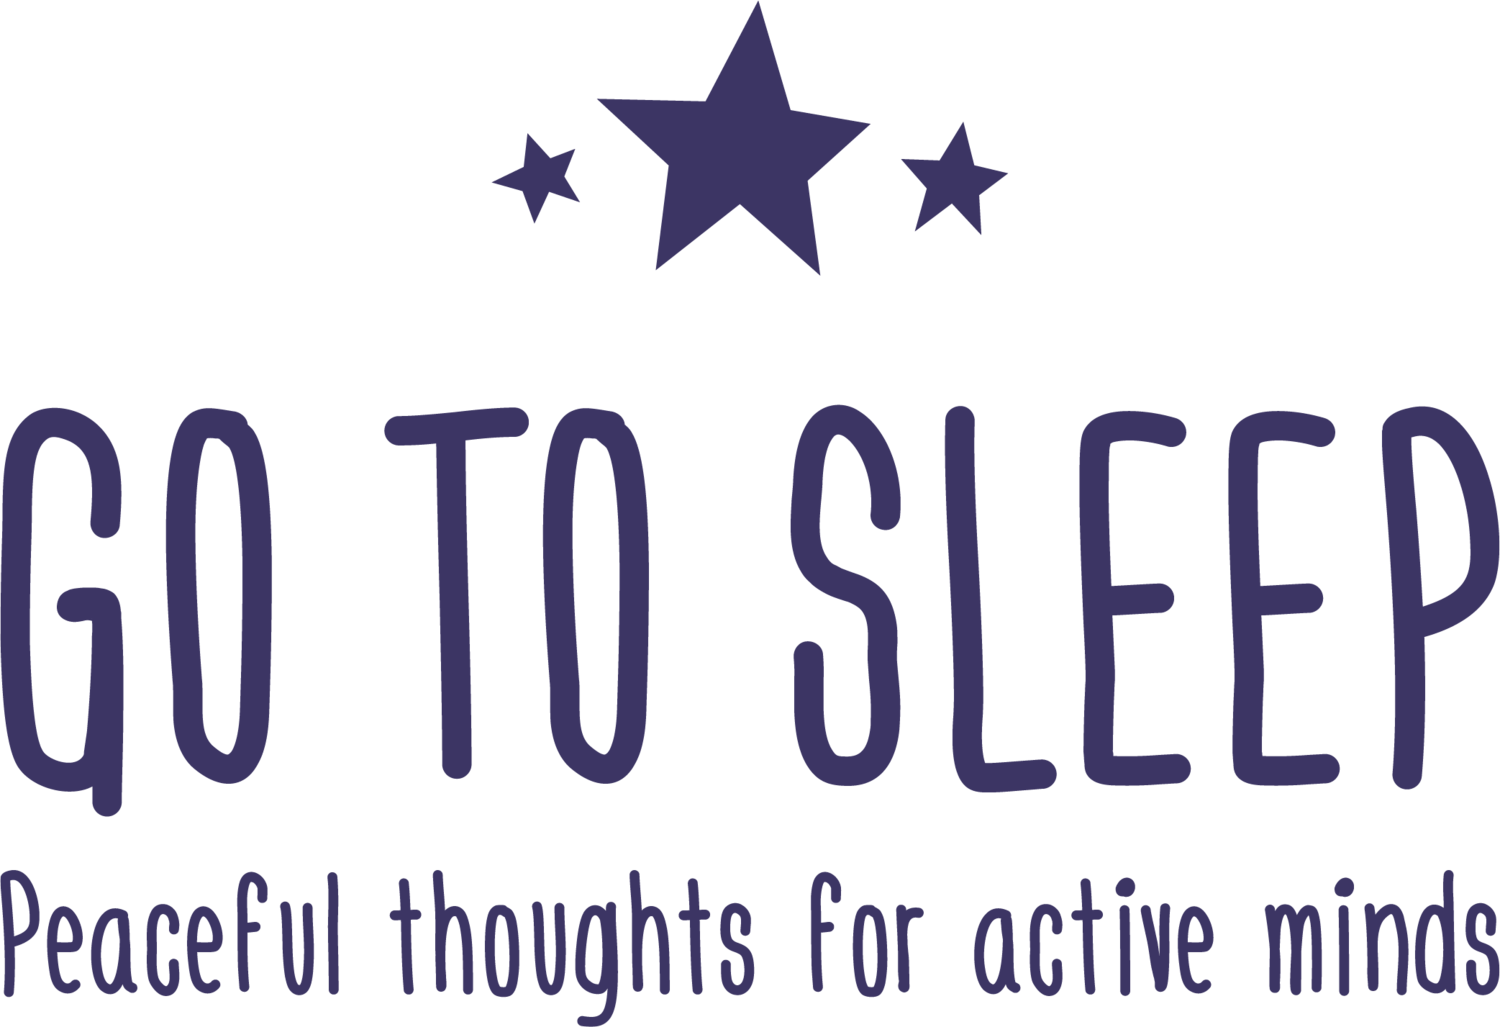 Yoga bed logo png. This simple routine will